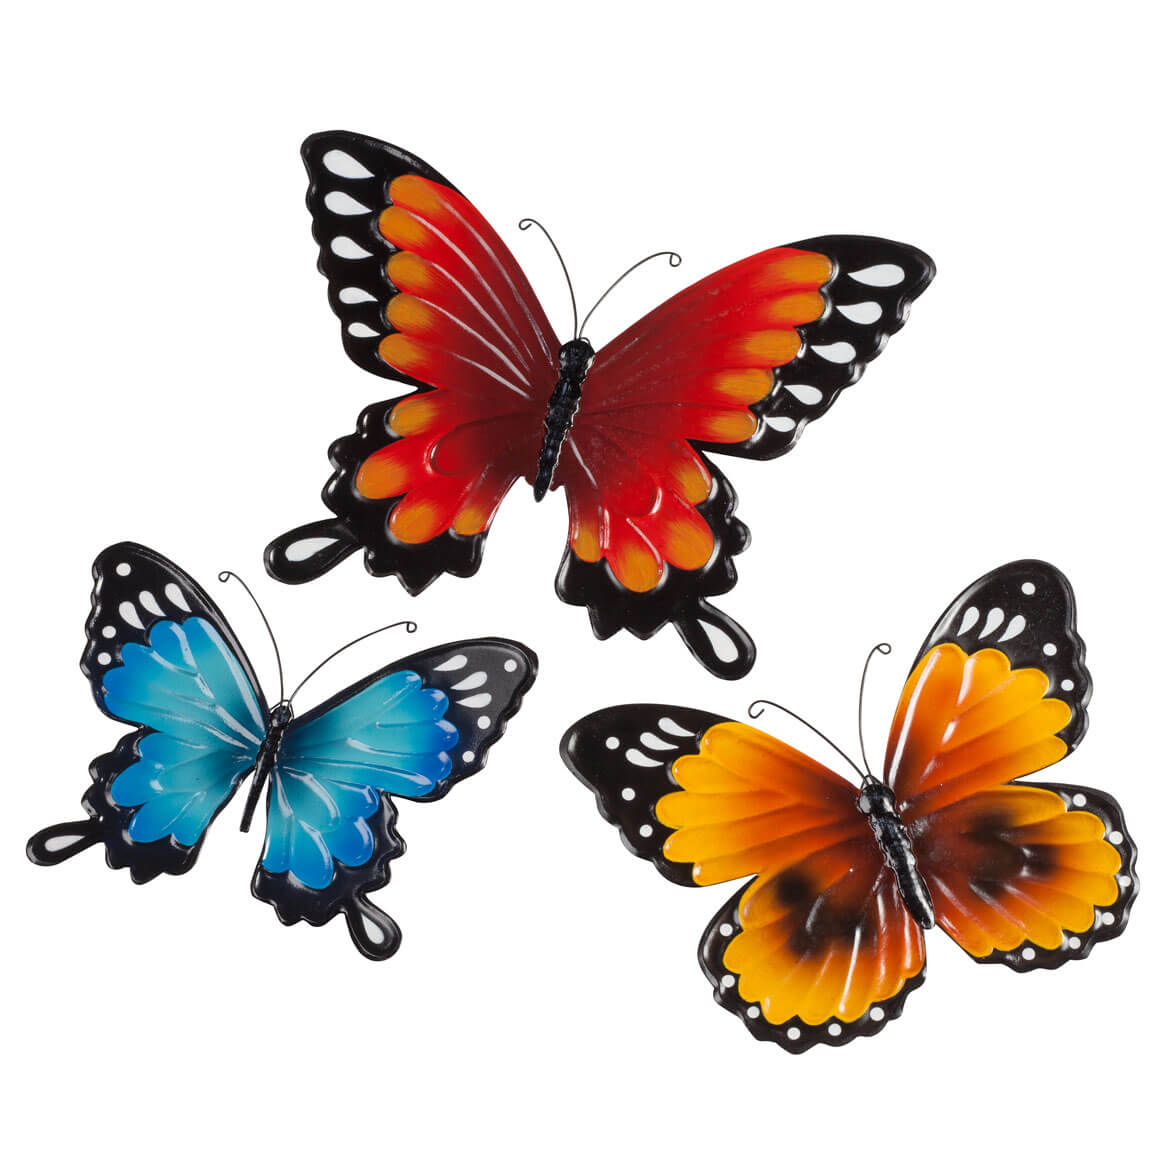 Metal Butterflies by Fox River™ Creations - Set of 3-348813